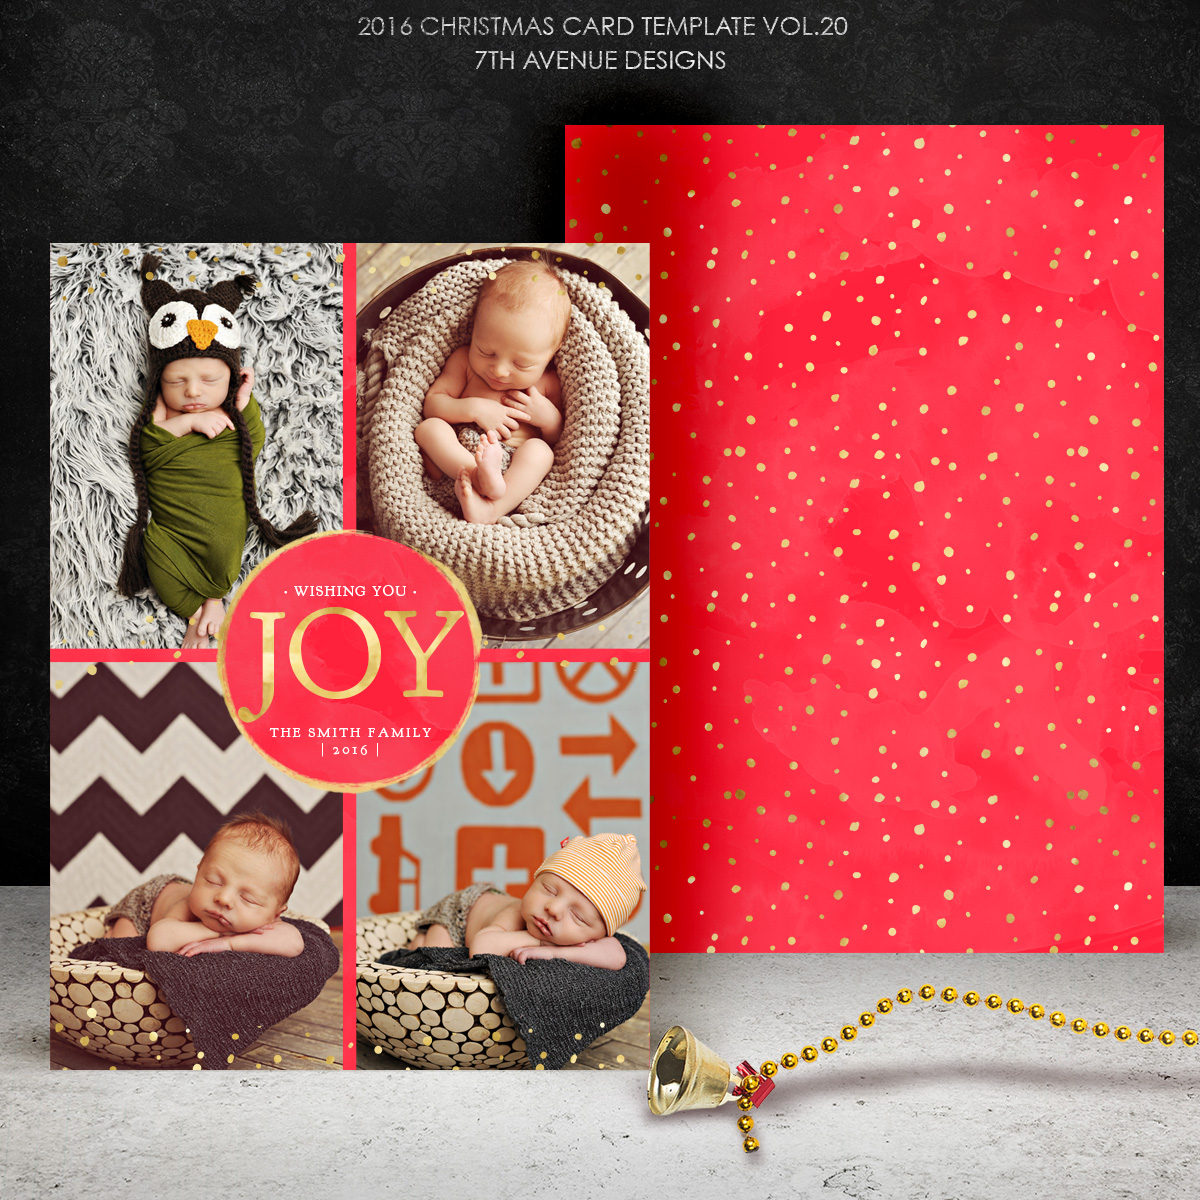 HOLIDAY CARDS 7thAvenue Designs Logo and Templates Designs – Holiday Card Template